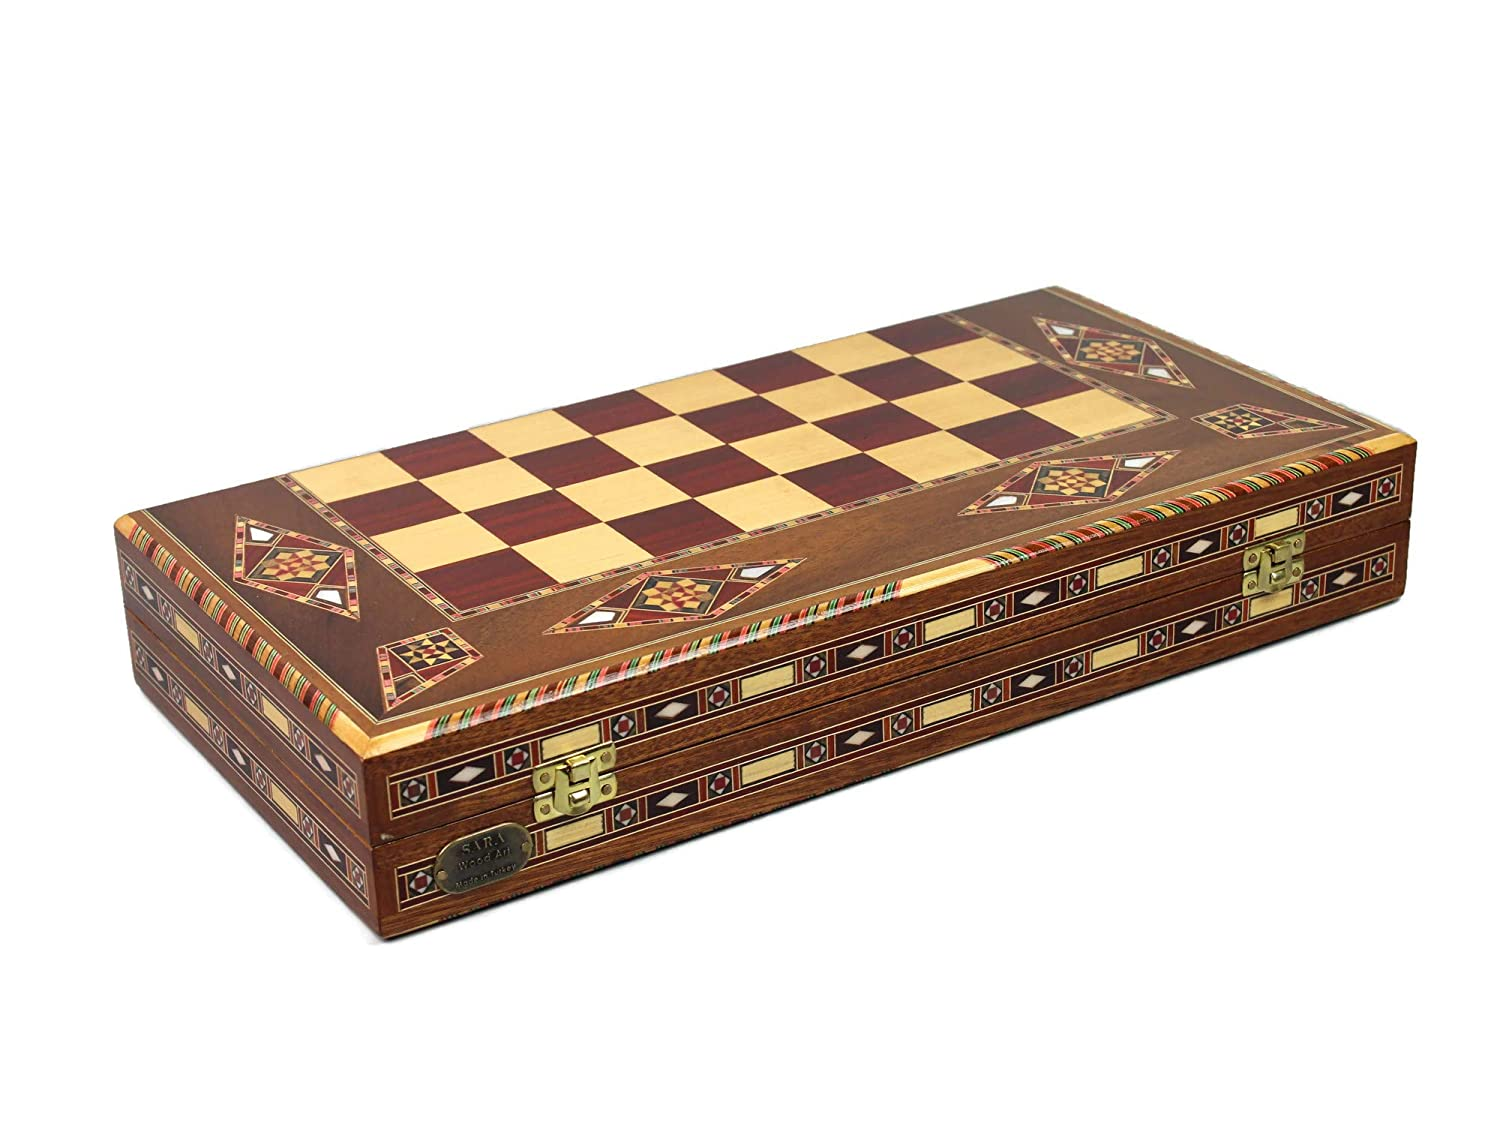 RW17 Chessgammon WOODEN BACKGAMMON TRAVEL SET CHESS CHECKERS SET HANDMADE INLAID RED WALNUT WOOD GAME BOARD MOSAIC INSET MOTHER OF PEARL NOVELTY